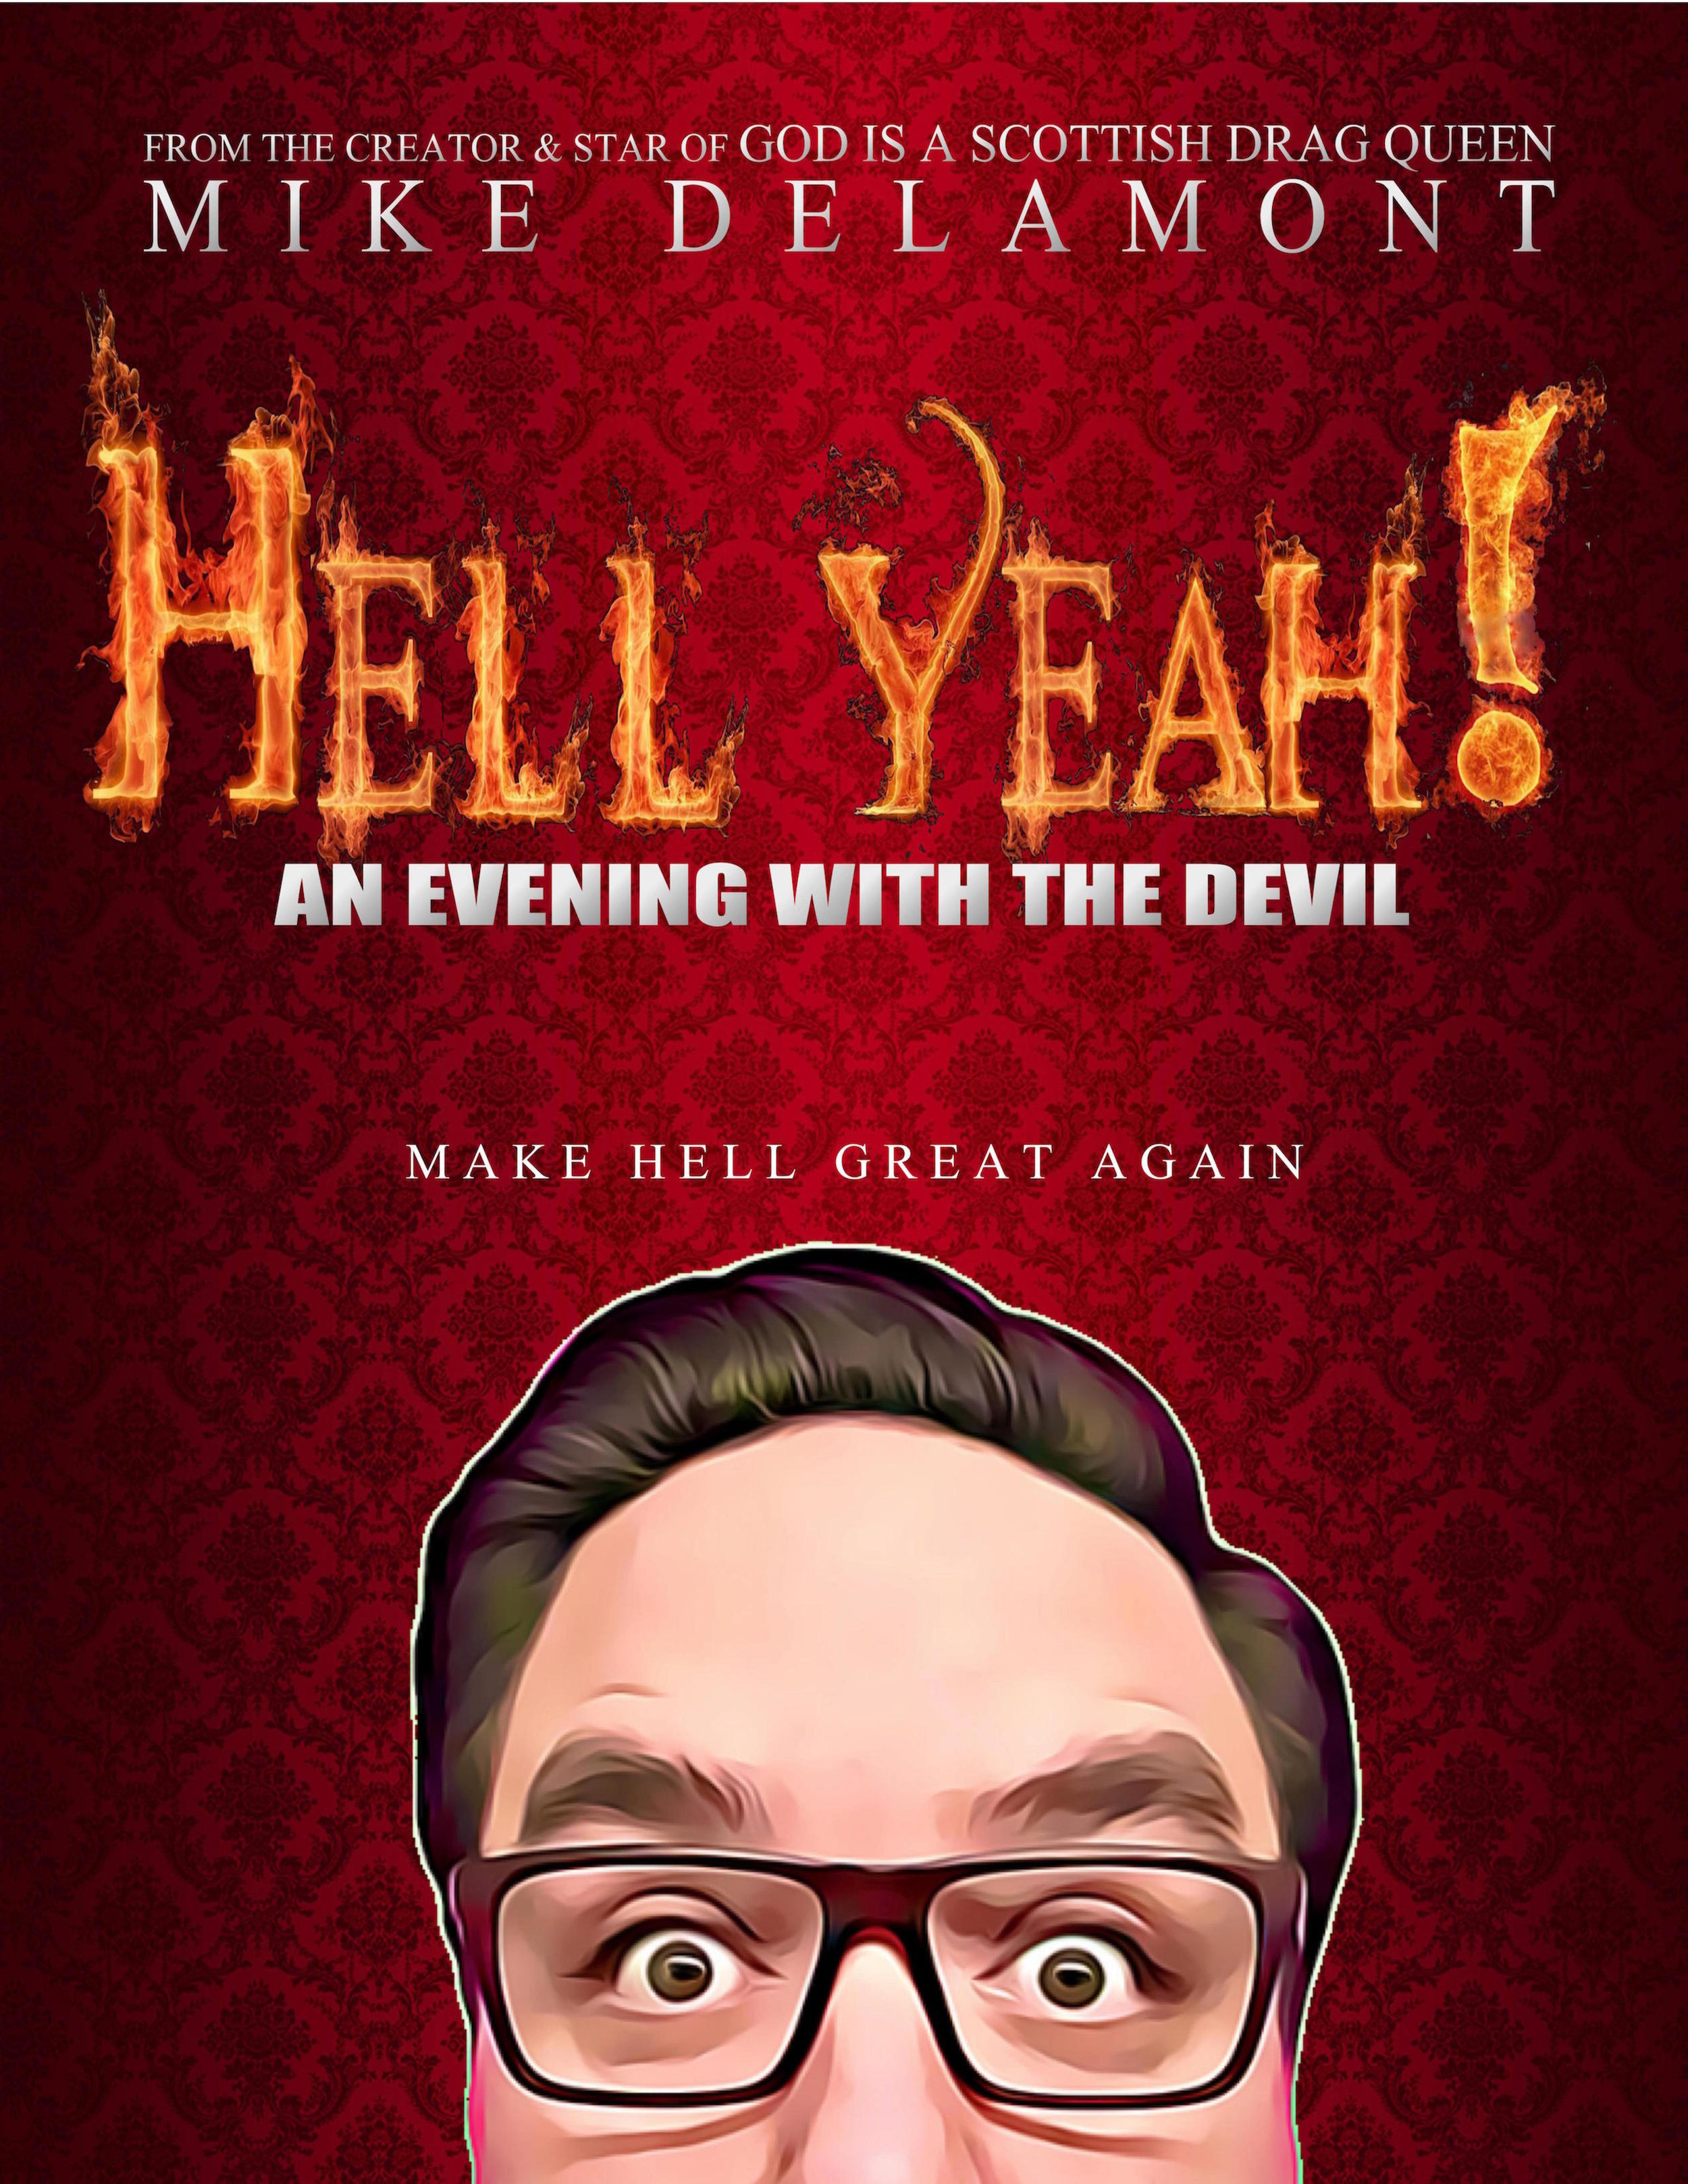 Hell Yeah! An Evening With The Devil - ★★★★★